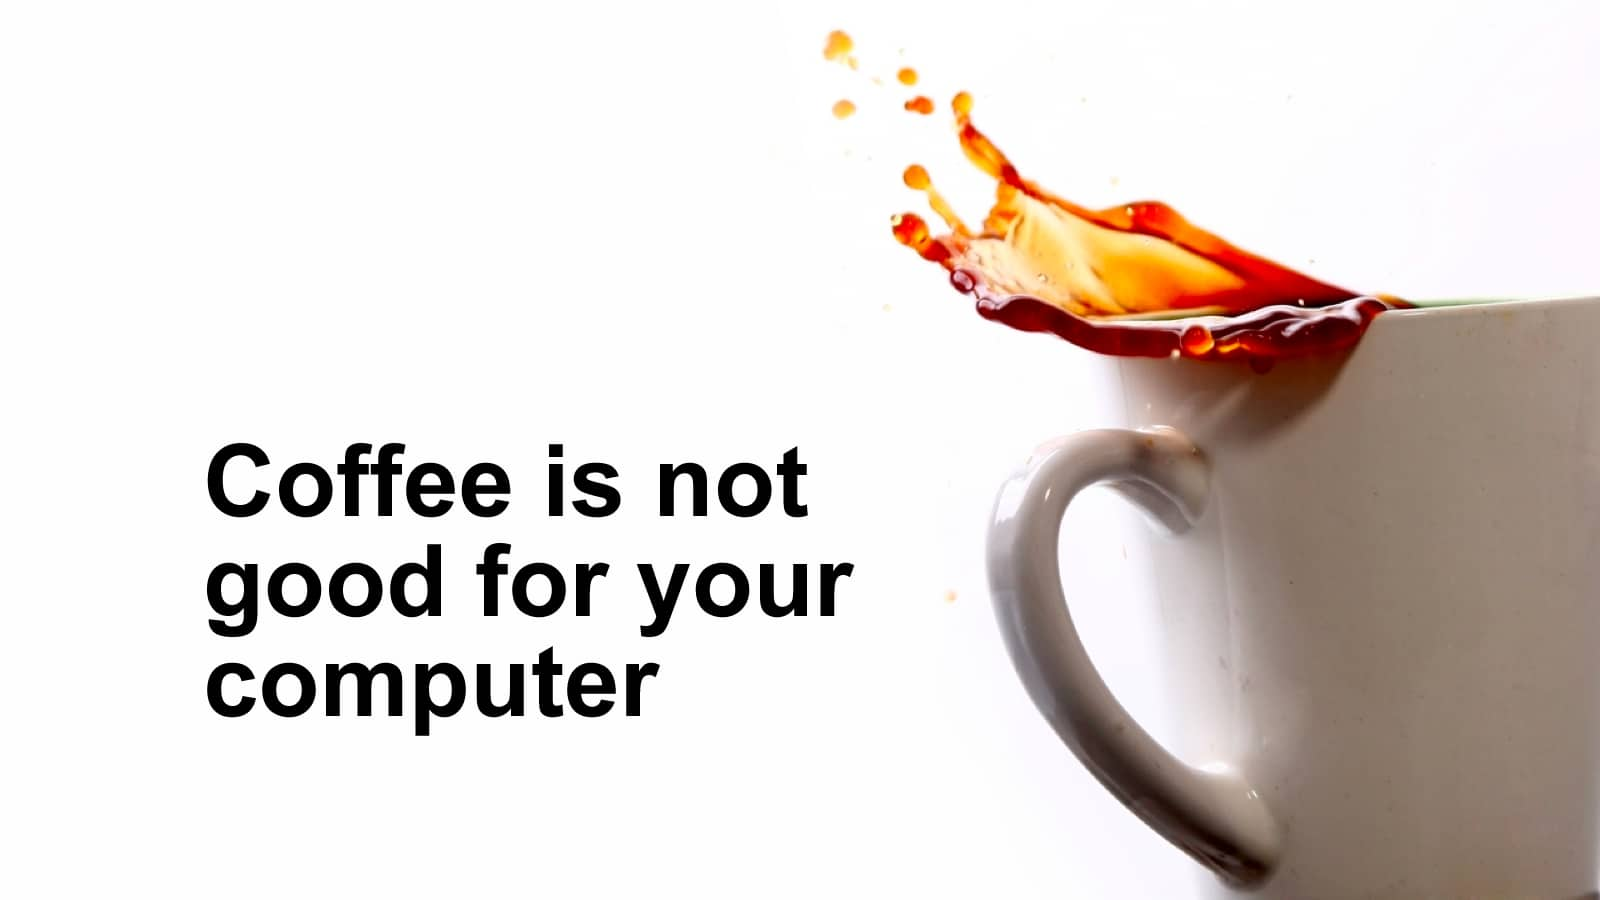 Coffee is not good for your computer